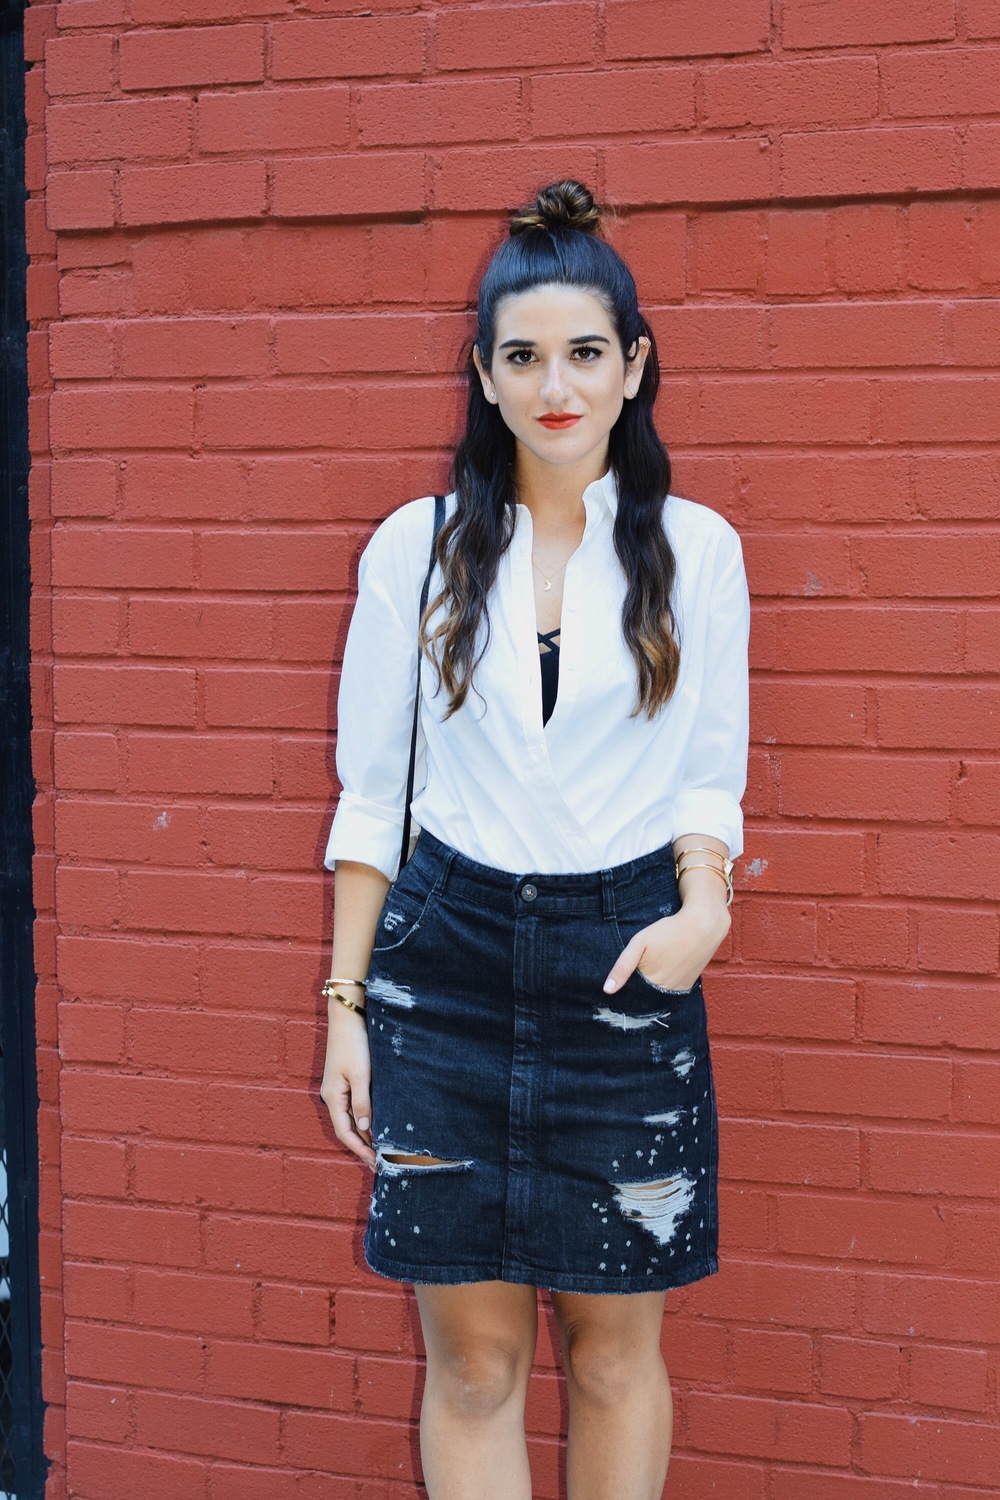 Coco & Marie Moon Necklace Giveaway Louboutins & Love Fashion Blog Esther Santer NYC Street Style Blogger Lifestyle Topknot Bun Denim Ripped Jean Skirt White Button Down Zara Black Box Clutch Bag Nordstrom Booties Bralette Gold Jewelry Women Girl OOTD.JPG